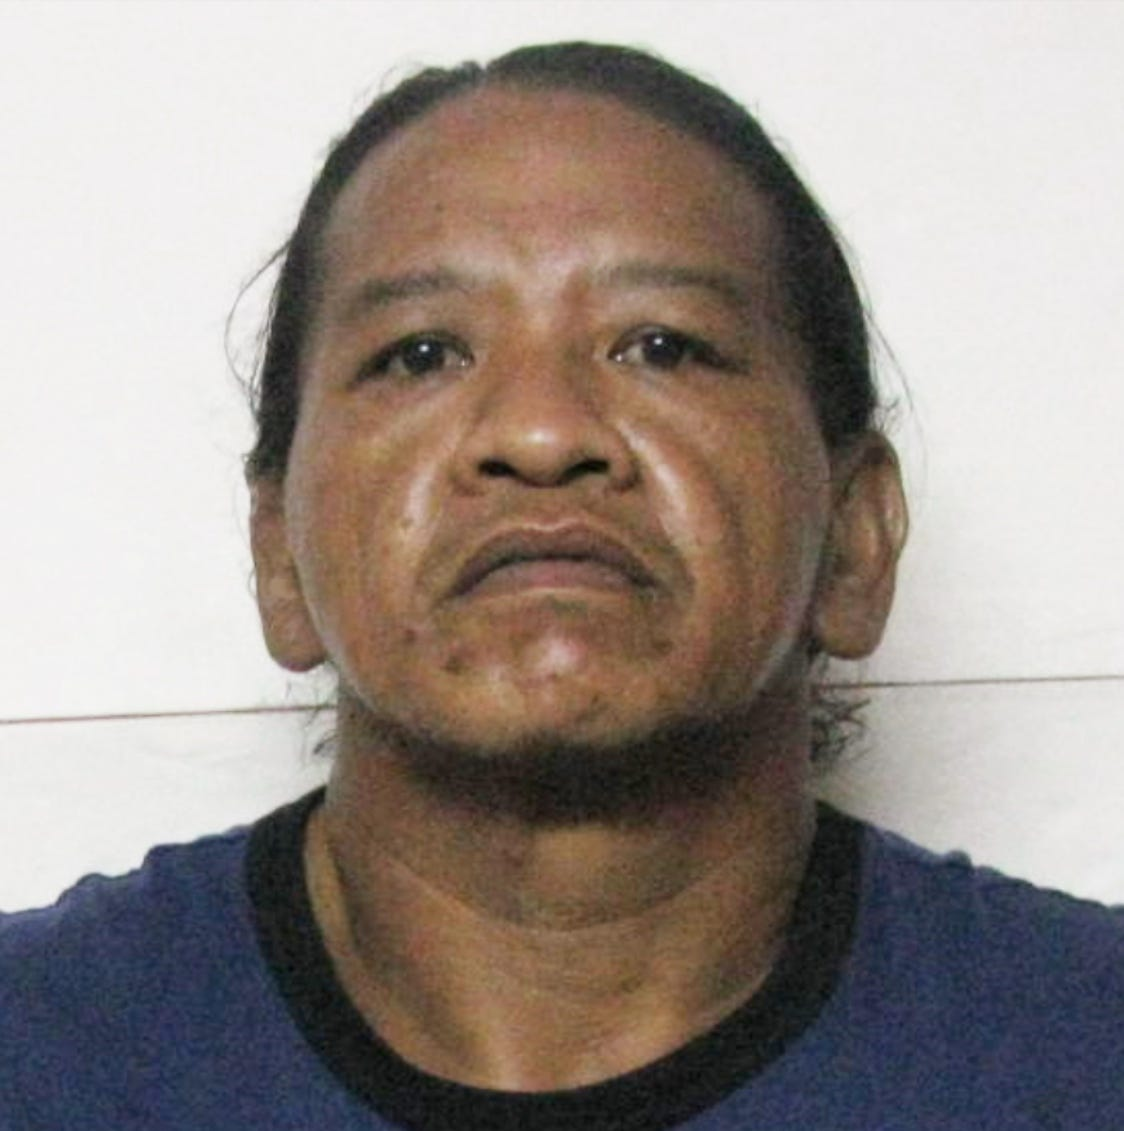 Police stop Leonard Borja Borja, allegedly find '5 nuggets of suspected crack cocaine'